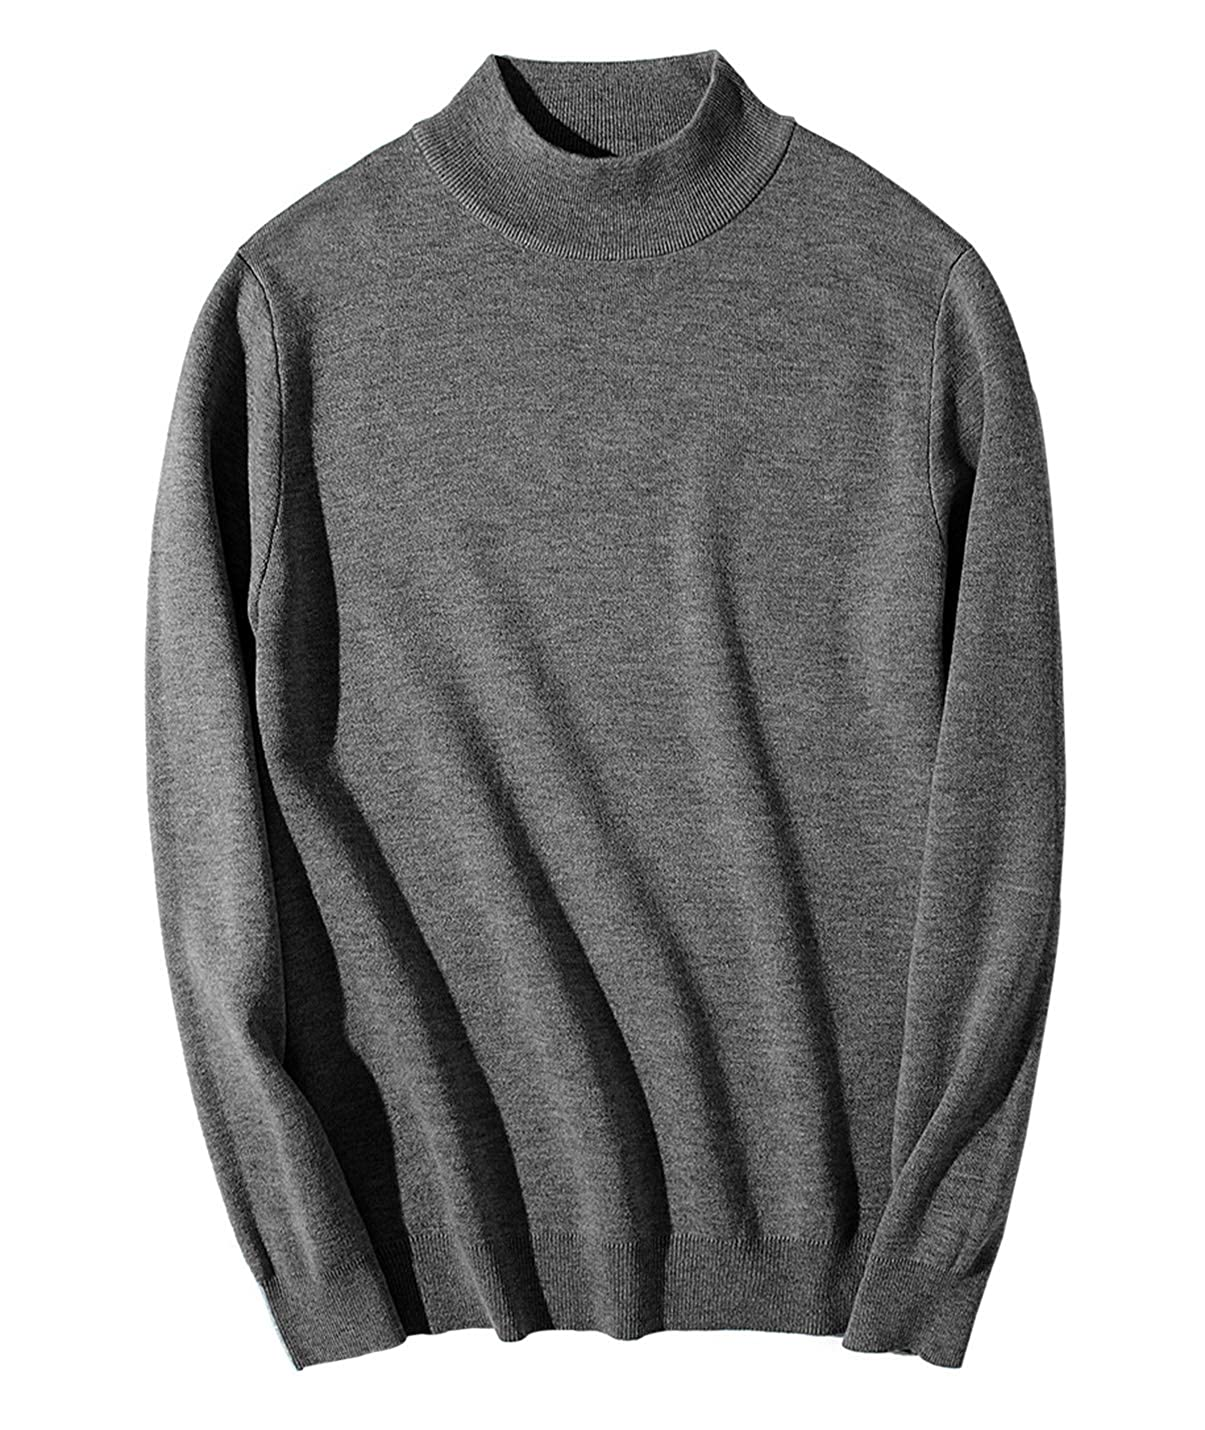 Yimoon Mens Slim Fit Turtleneck Sweater Casual Knitted Pullover Sweaters